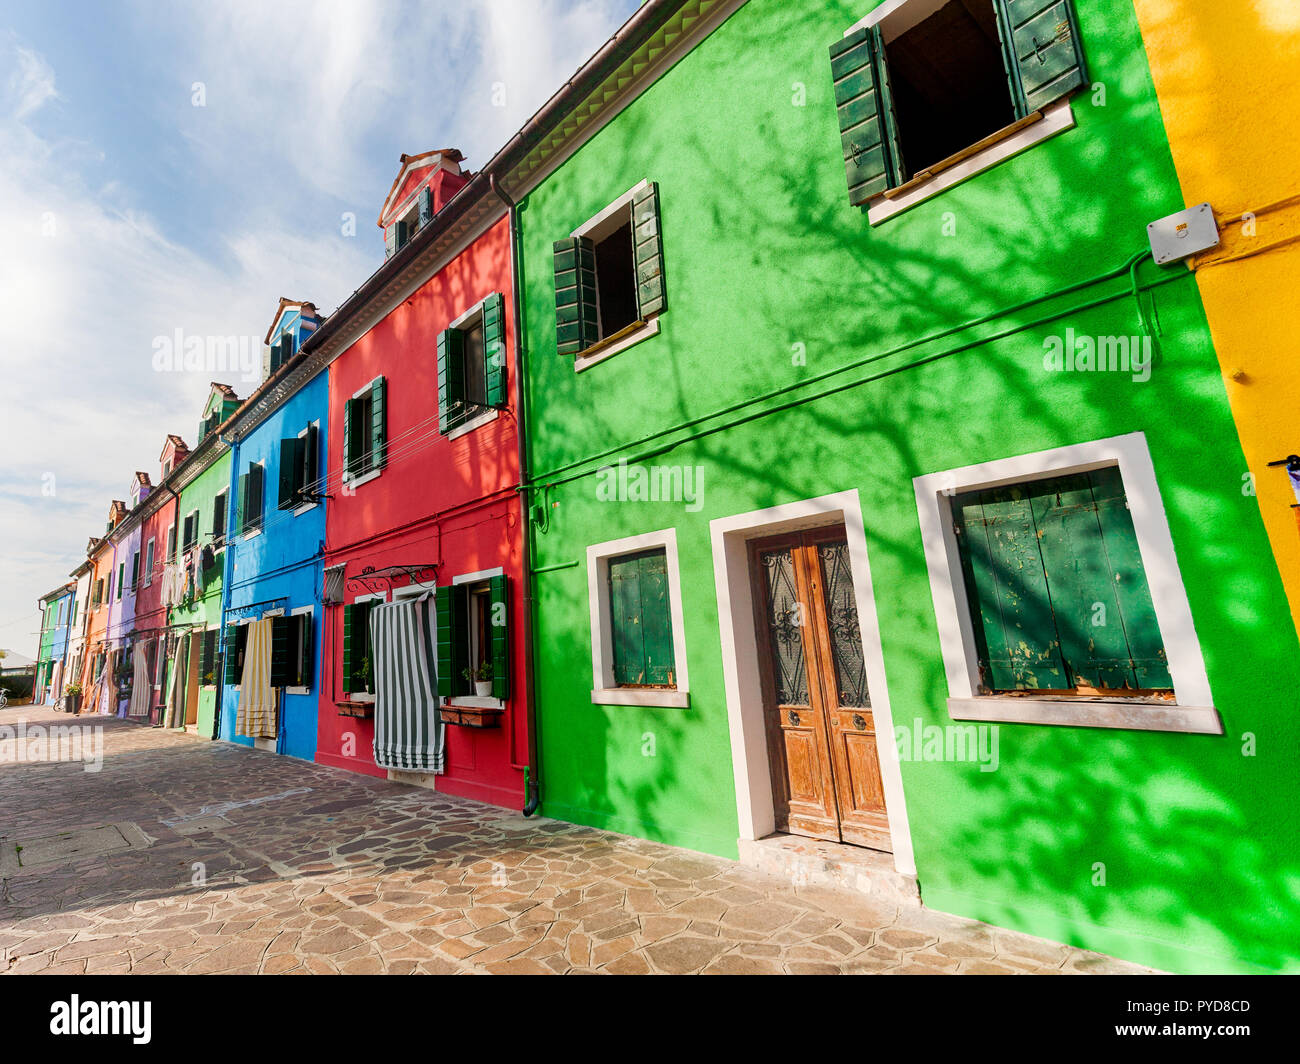 The colorful fishermen's houses in Burano, Italy Stock Photo